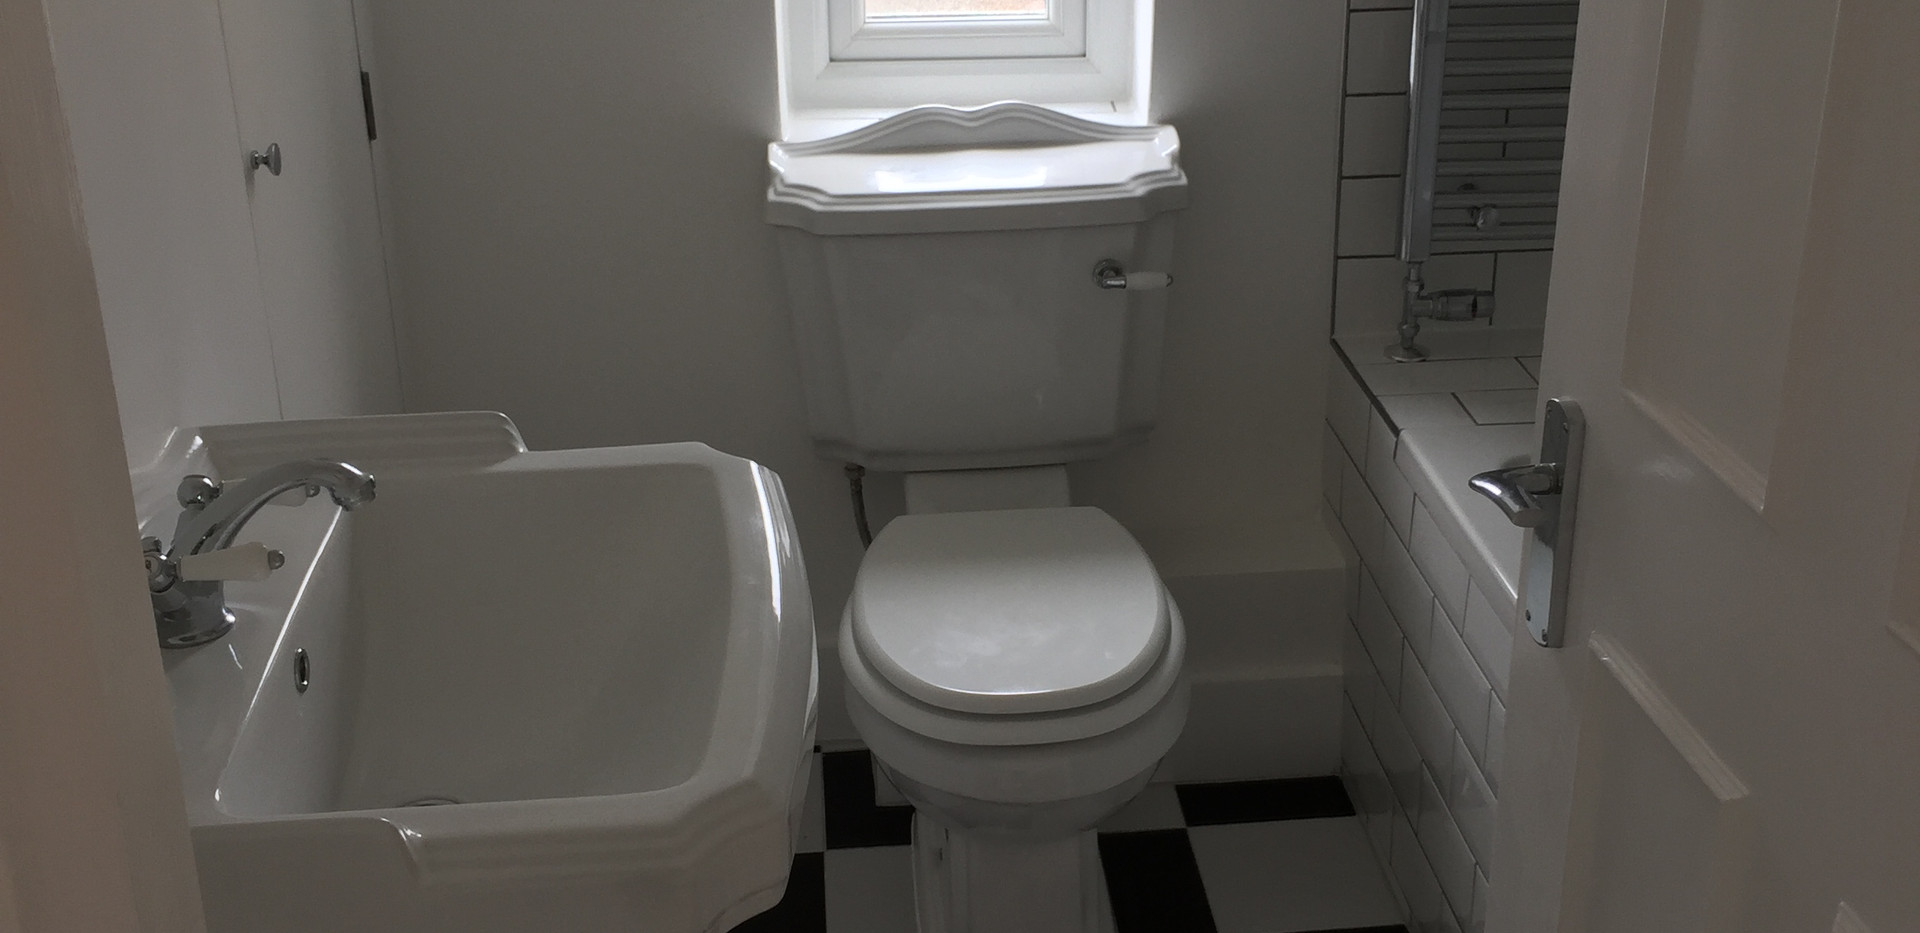 Bathroom and toilet tiled